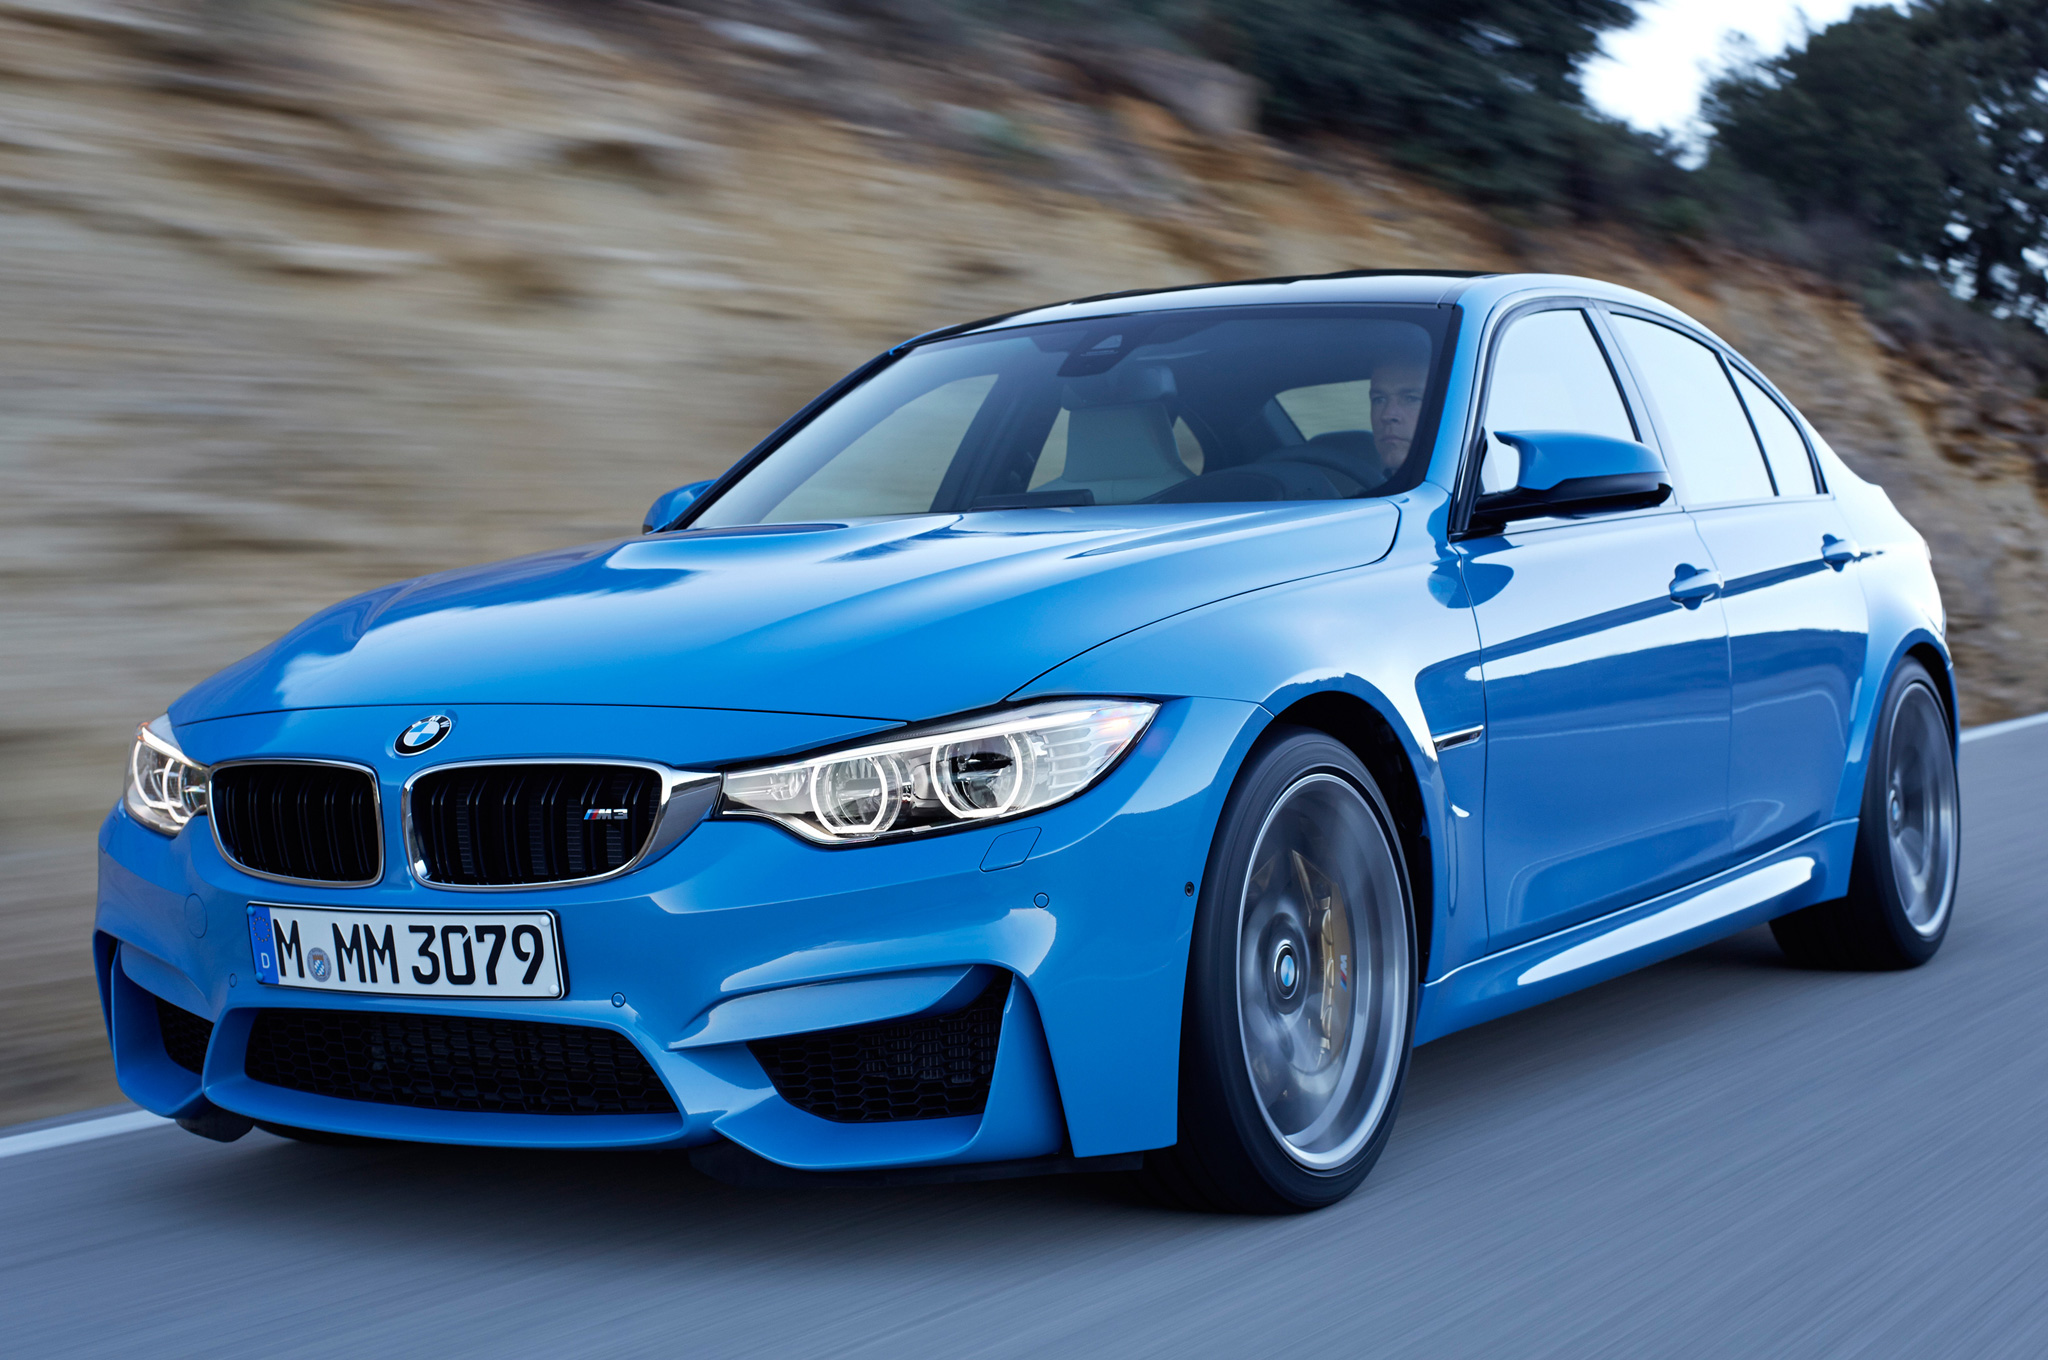 2015 BMW M3/M4 Images, Info Leak Ahead of Official Debut